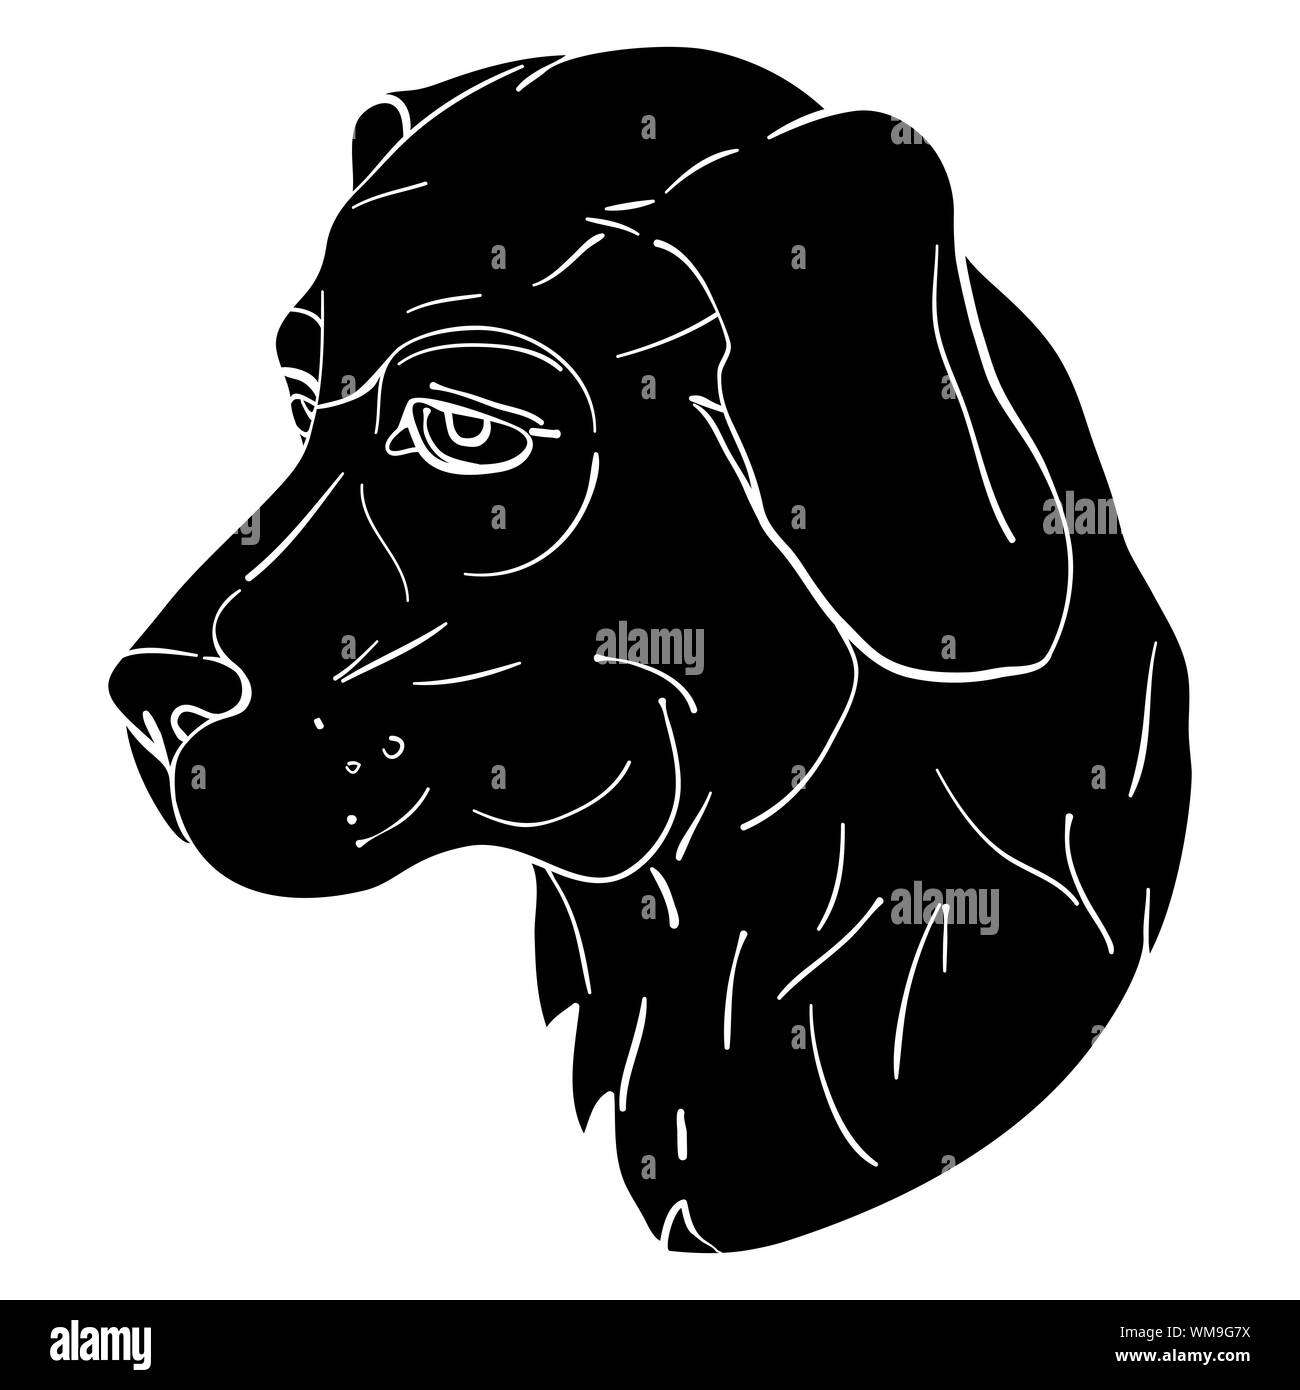 Chinese Zodiac Black and White Stock Photos & Images - Alamy